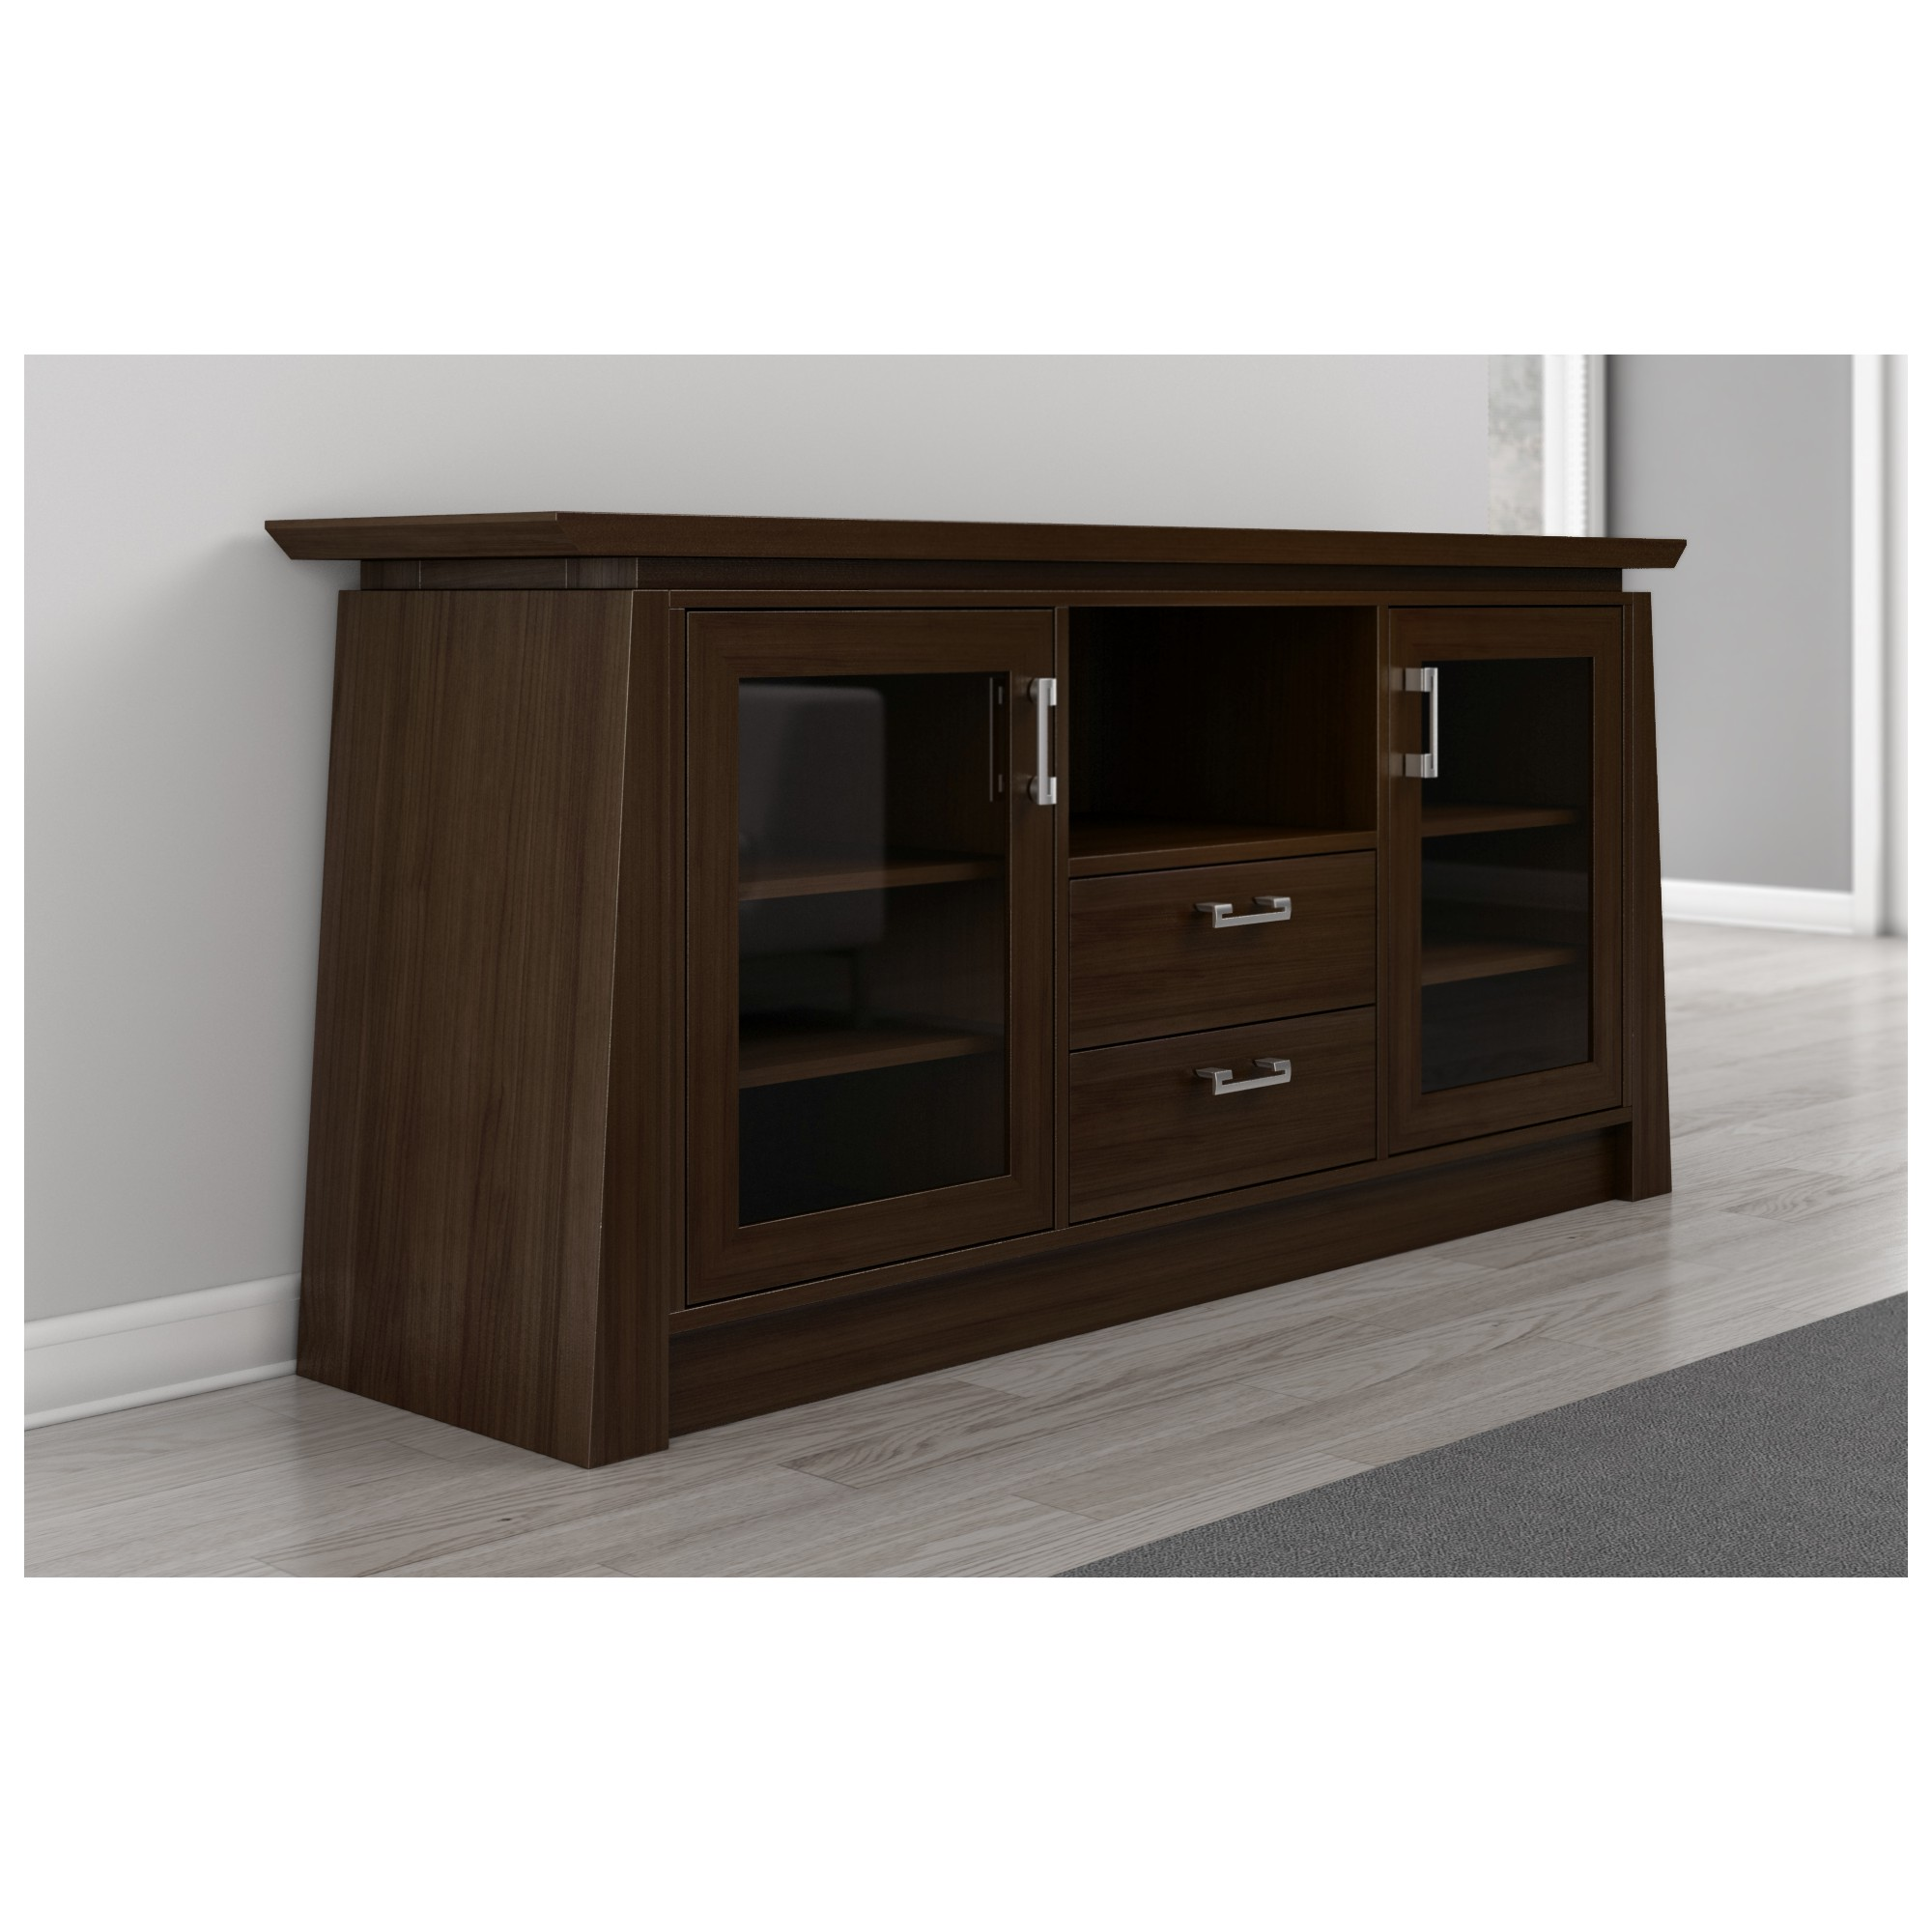 70 Tv Stand Asian Style Media Cabinet W Center Speaker Opening In Chocolate By Furnitech